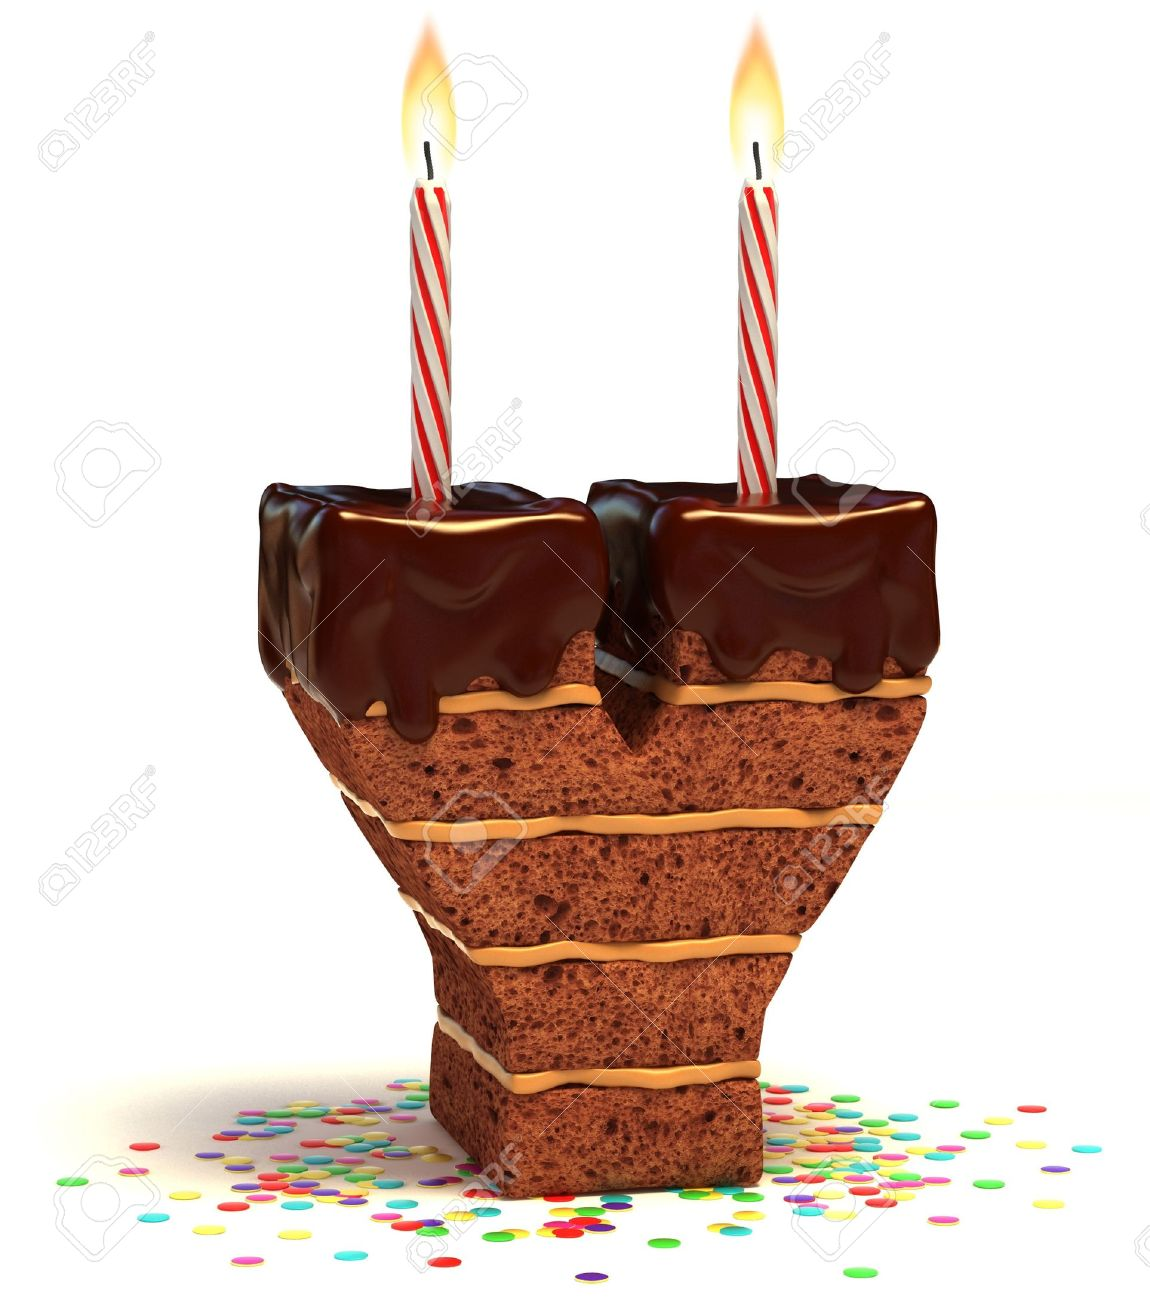 Astounding Letter Y Shaped Chocolate Birthday Cake With Lit Candle And Personalised Birthday Cards Bromeletsinfo